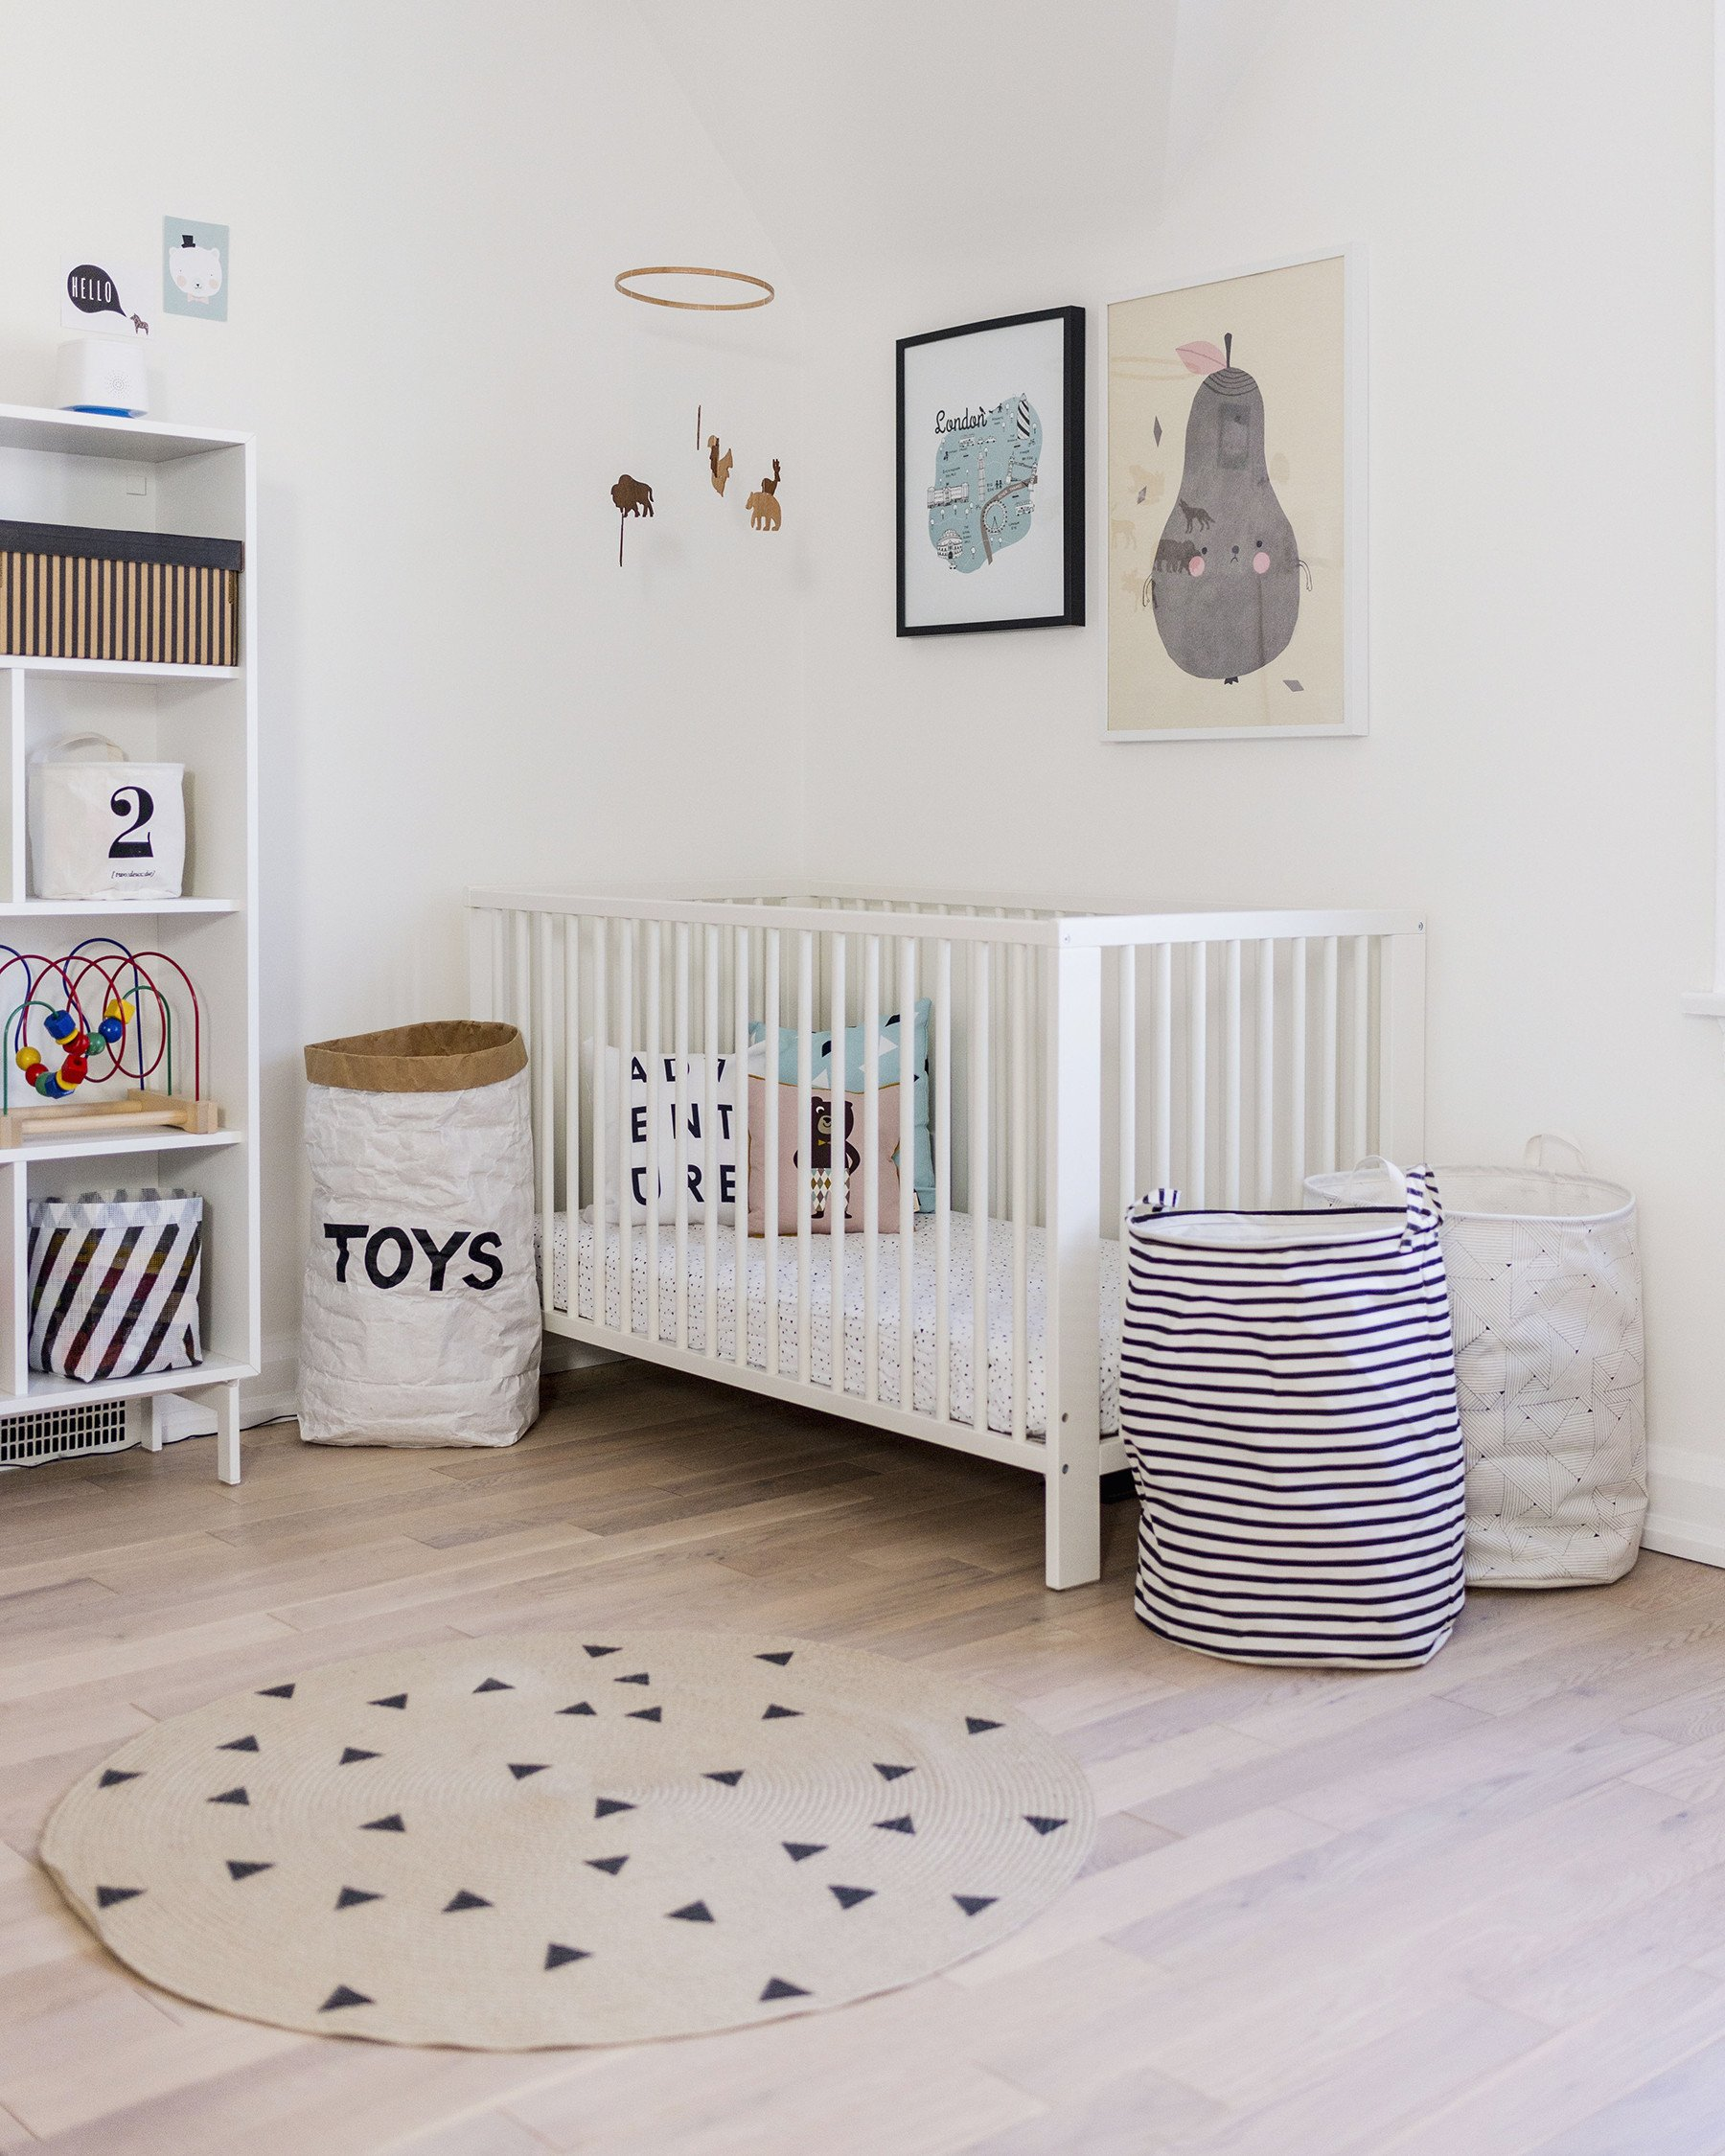 Scandinavian Decor On A Budget Awesome Favourite Scandinavian Nursery Kids Room Decor Items Under $15 $25 $35